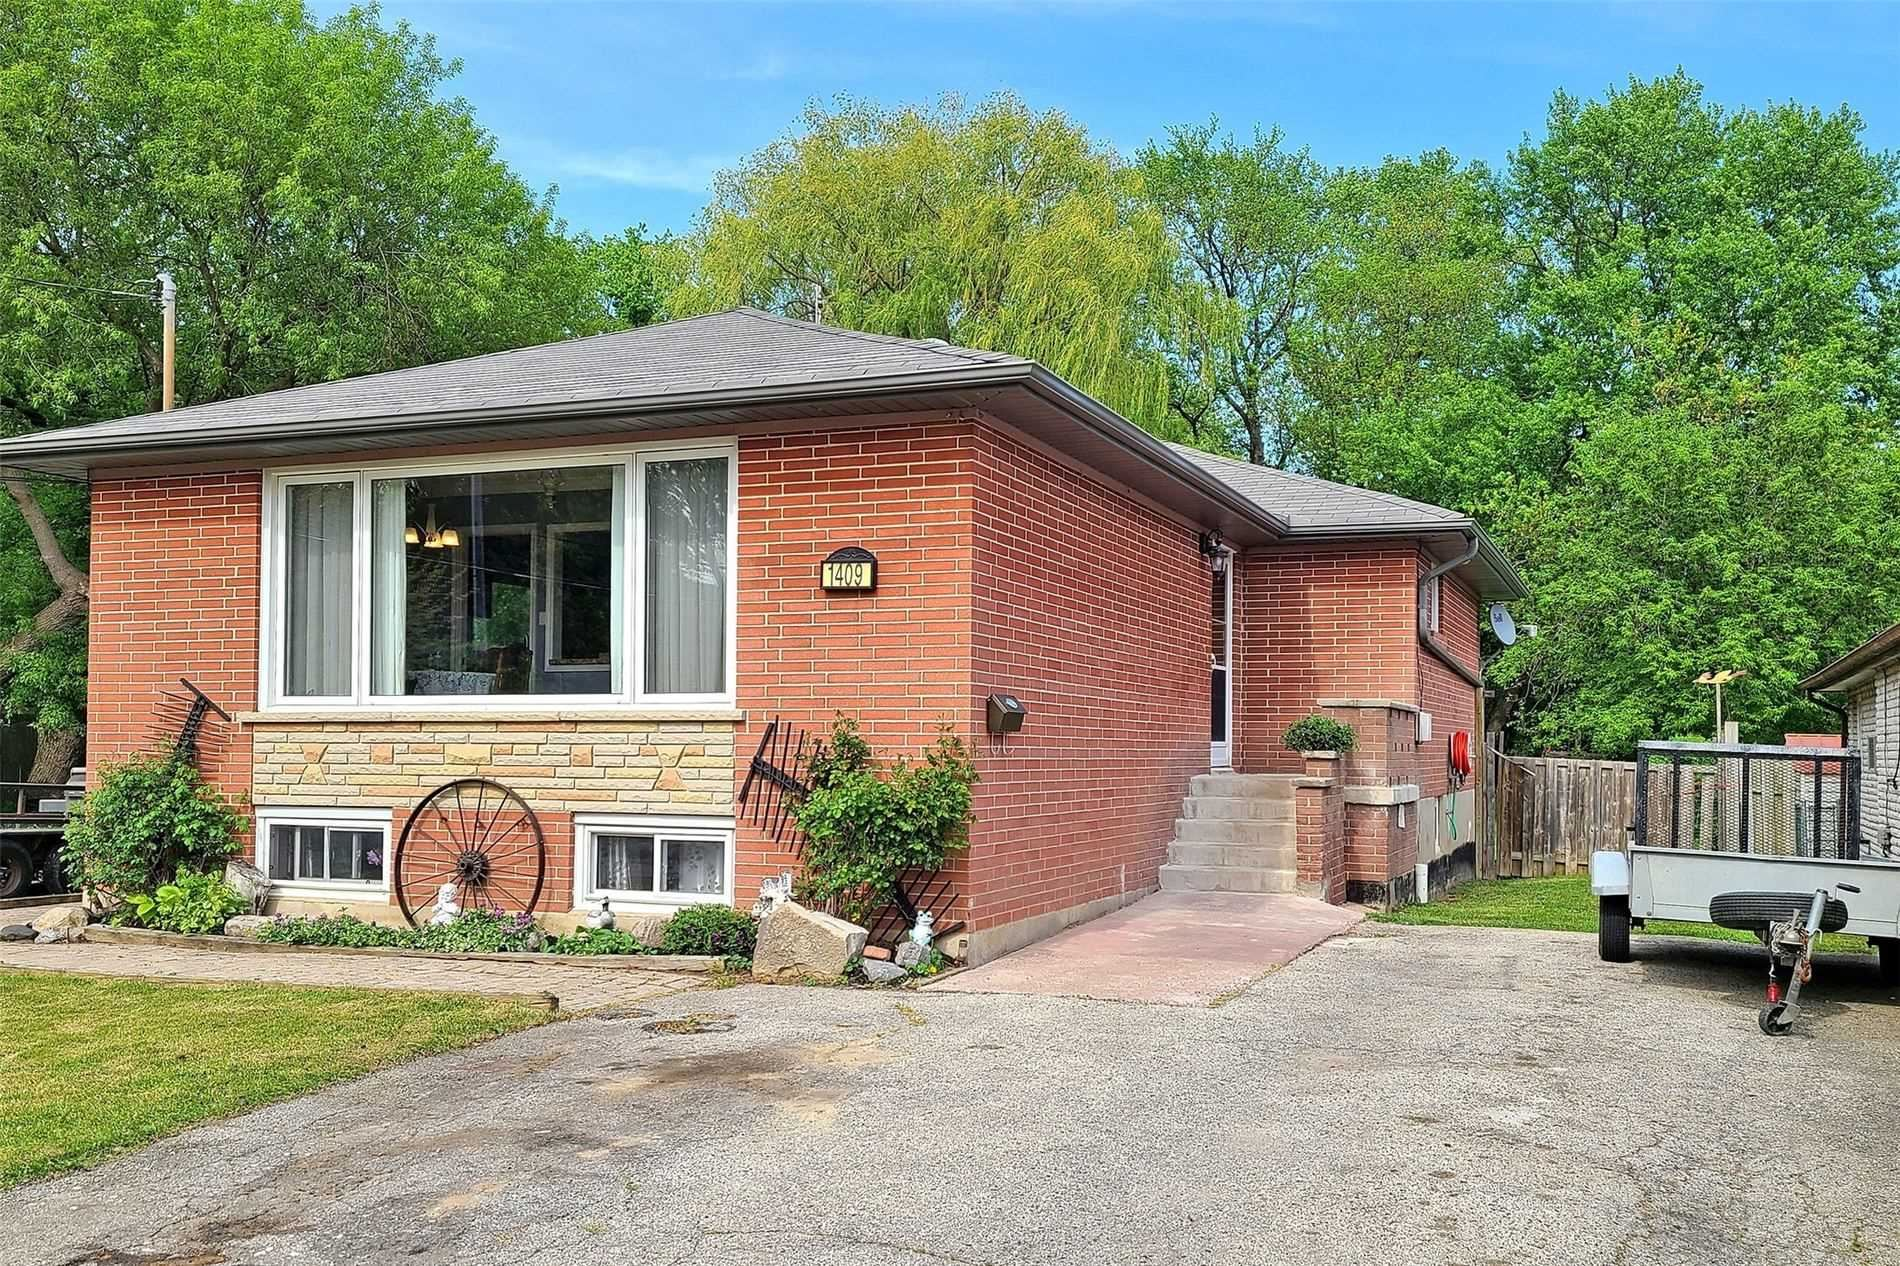 1409 Old Forest  Rd, Pickering, ON L1V1N8 - MLS#: E5246297